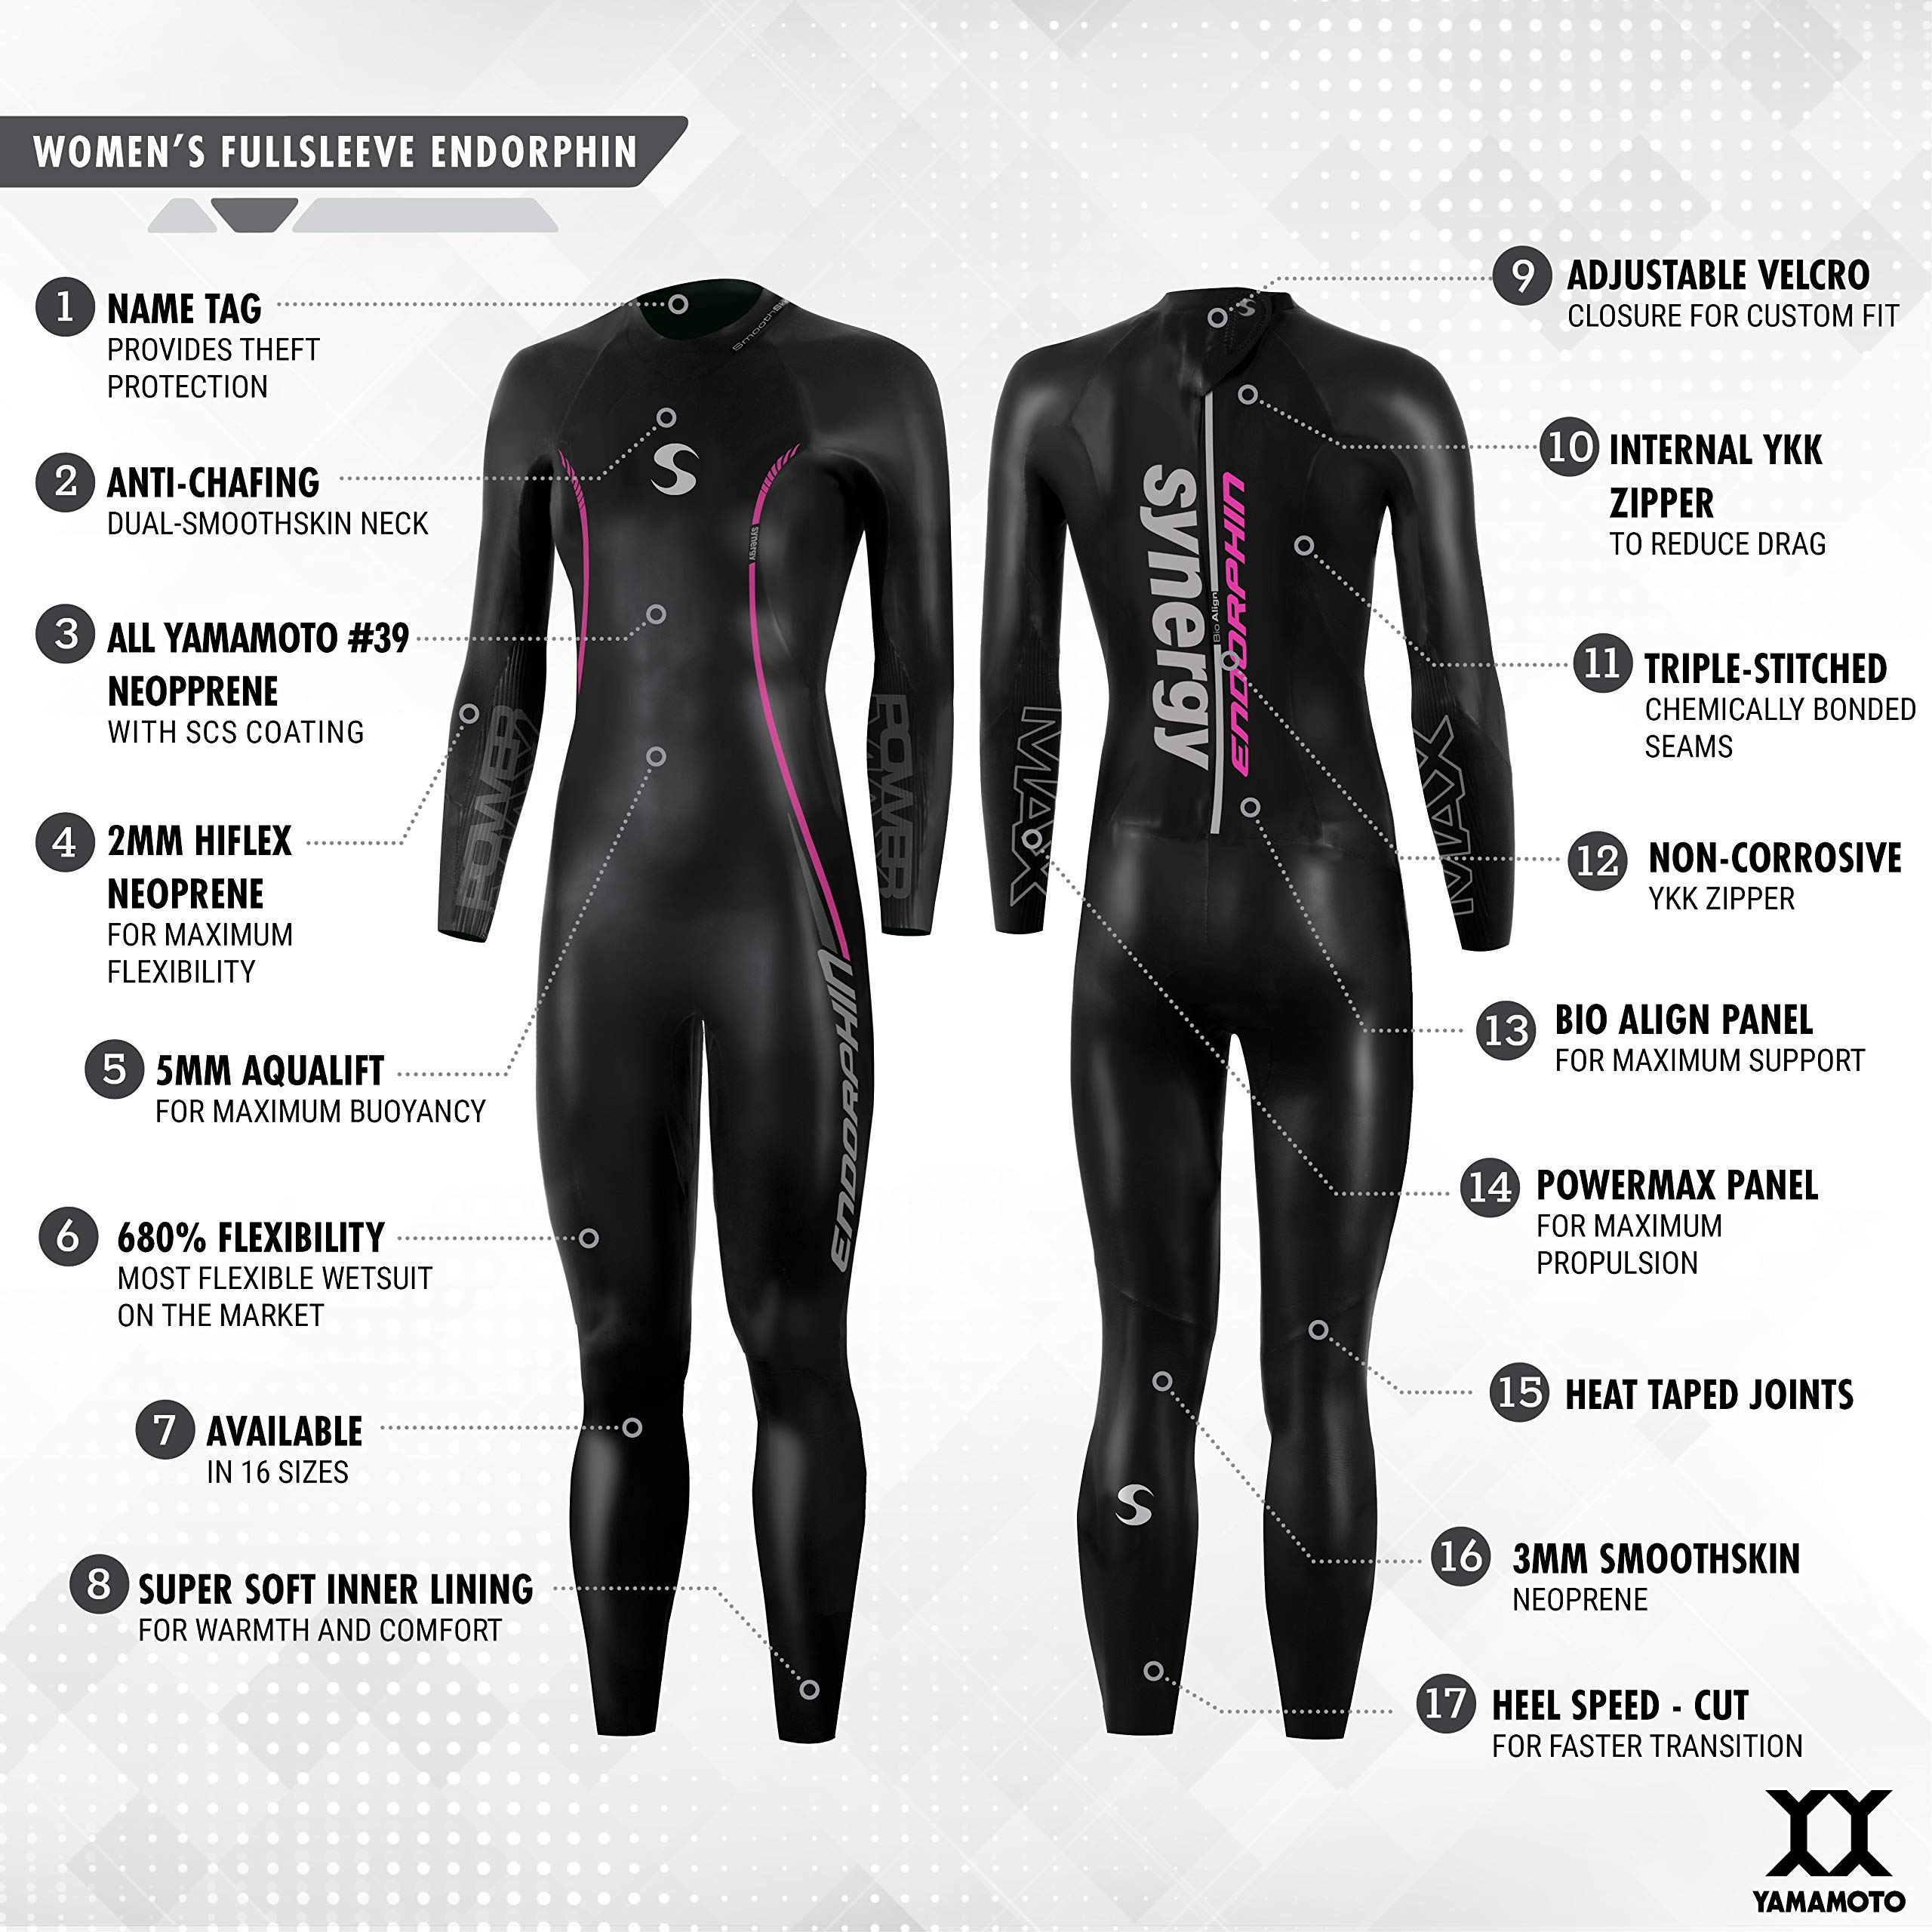 cfac5abf1e9 Synergy Triathlon Wetsuit 5/3mm - Women's Endorphin Full Sleeve Smoothskin  Neoprene for Open Water Swimming Ironman & USAT Approved < Triathlon <  Sports ...